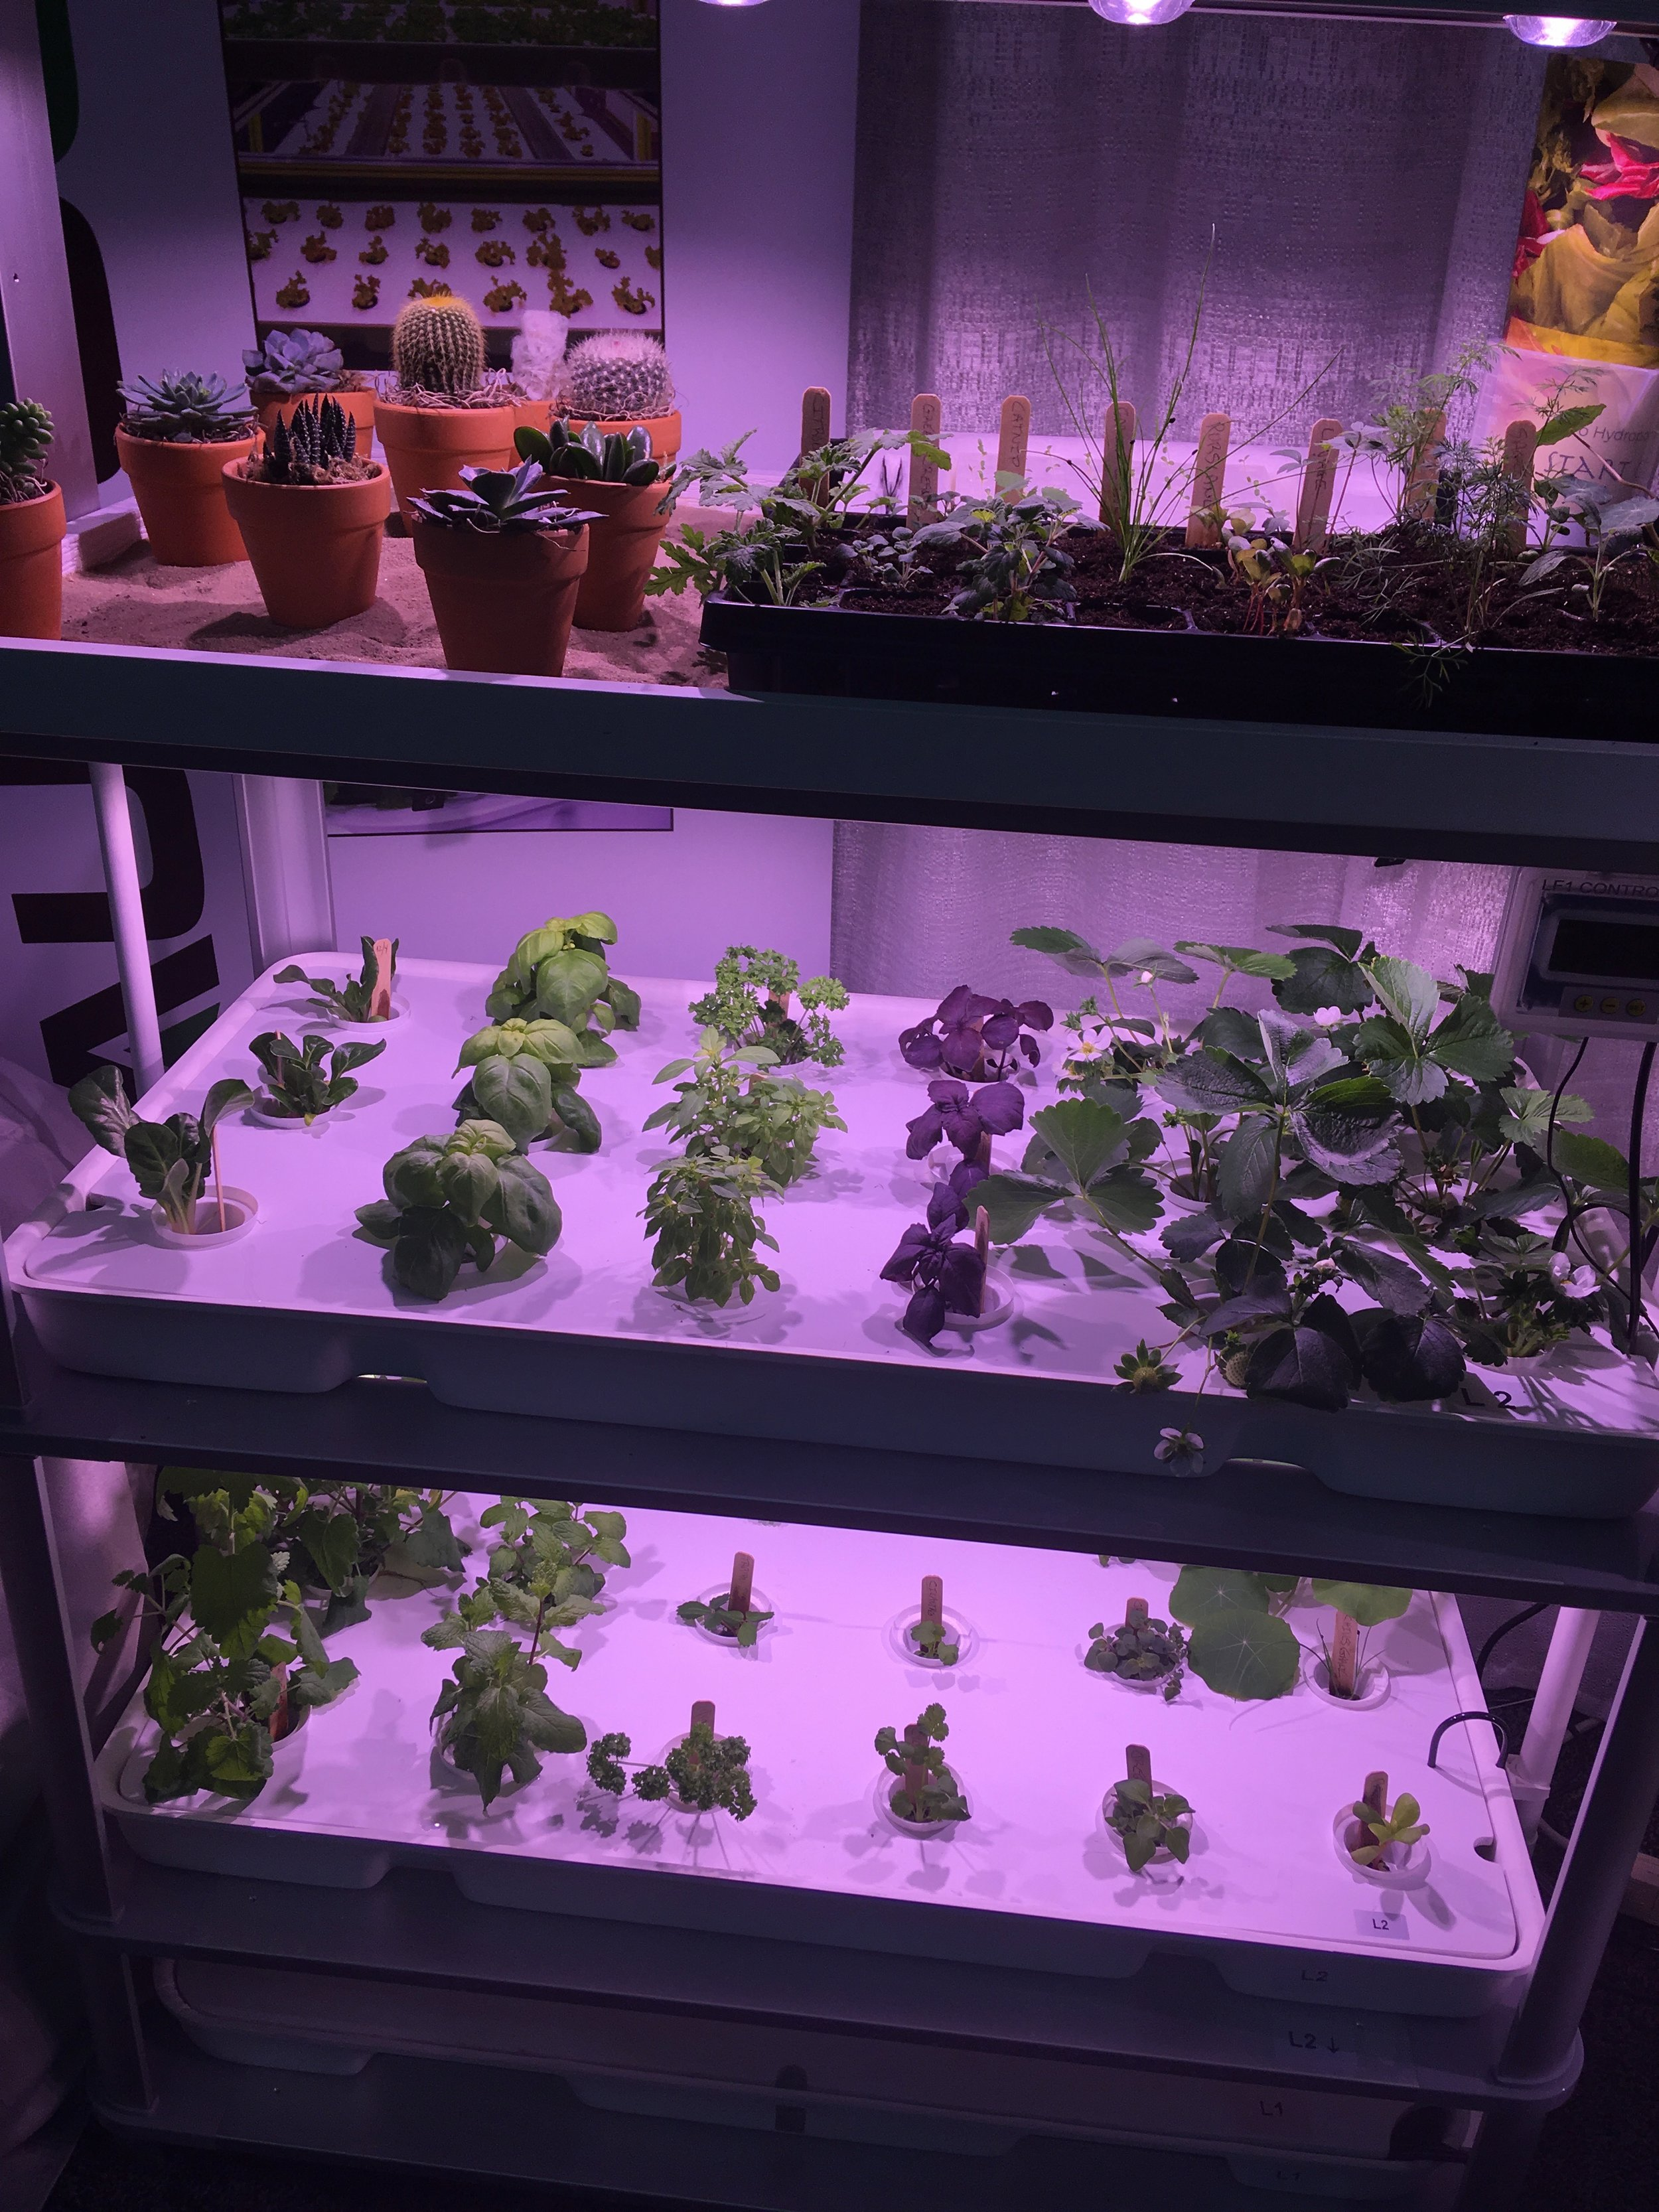 Hydroponic and Geoponic thriving together in the LF-ONE.